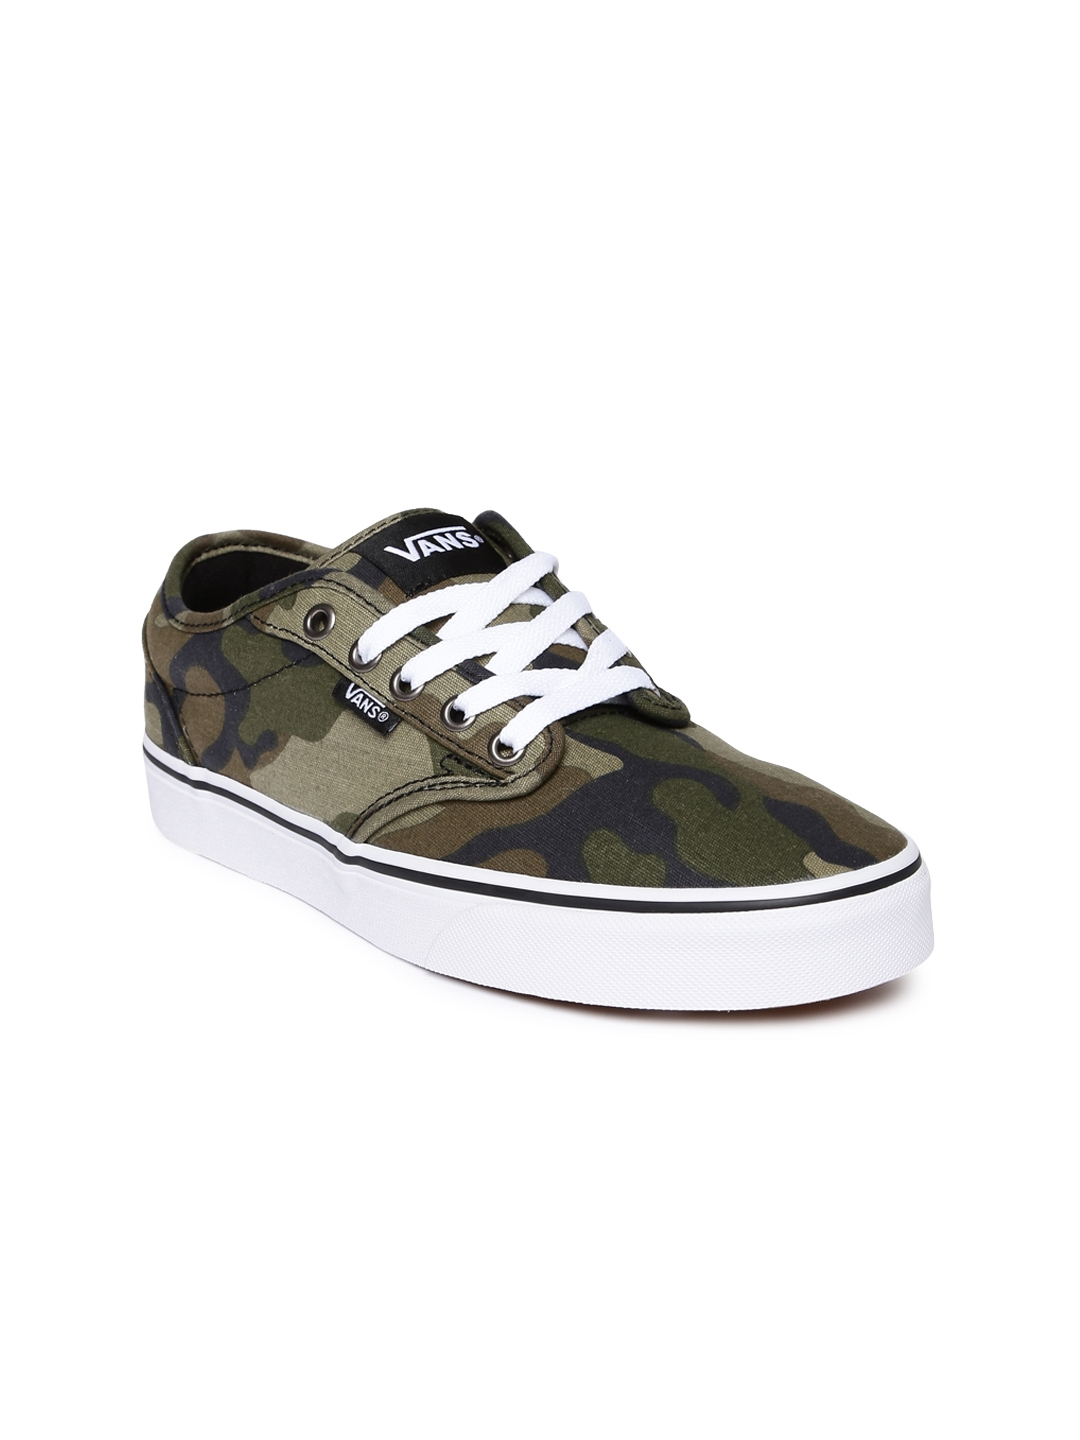 d2a5eac9c44d69 Buy Vans Men Olive Green Camouflage Printed Atwood Sneakers - Casual ...